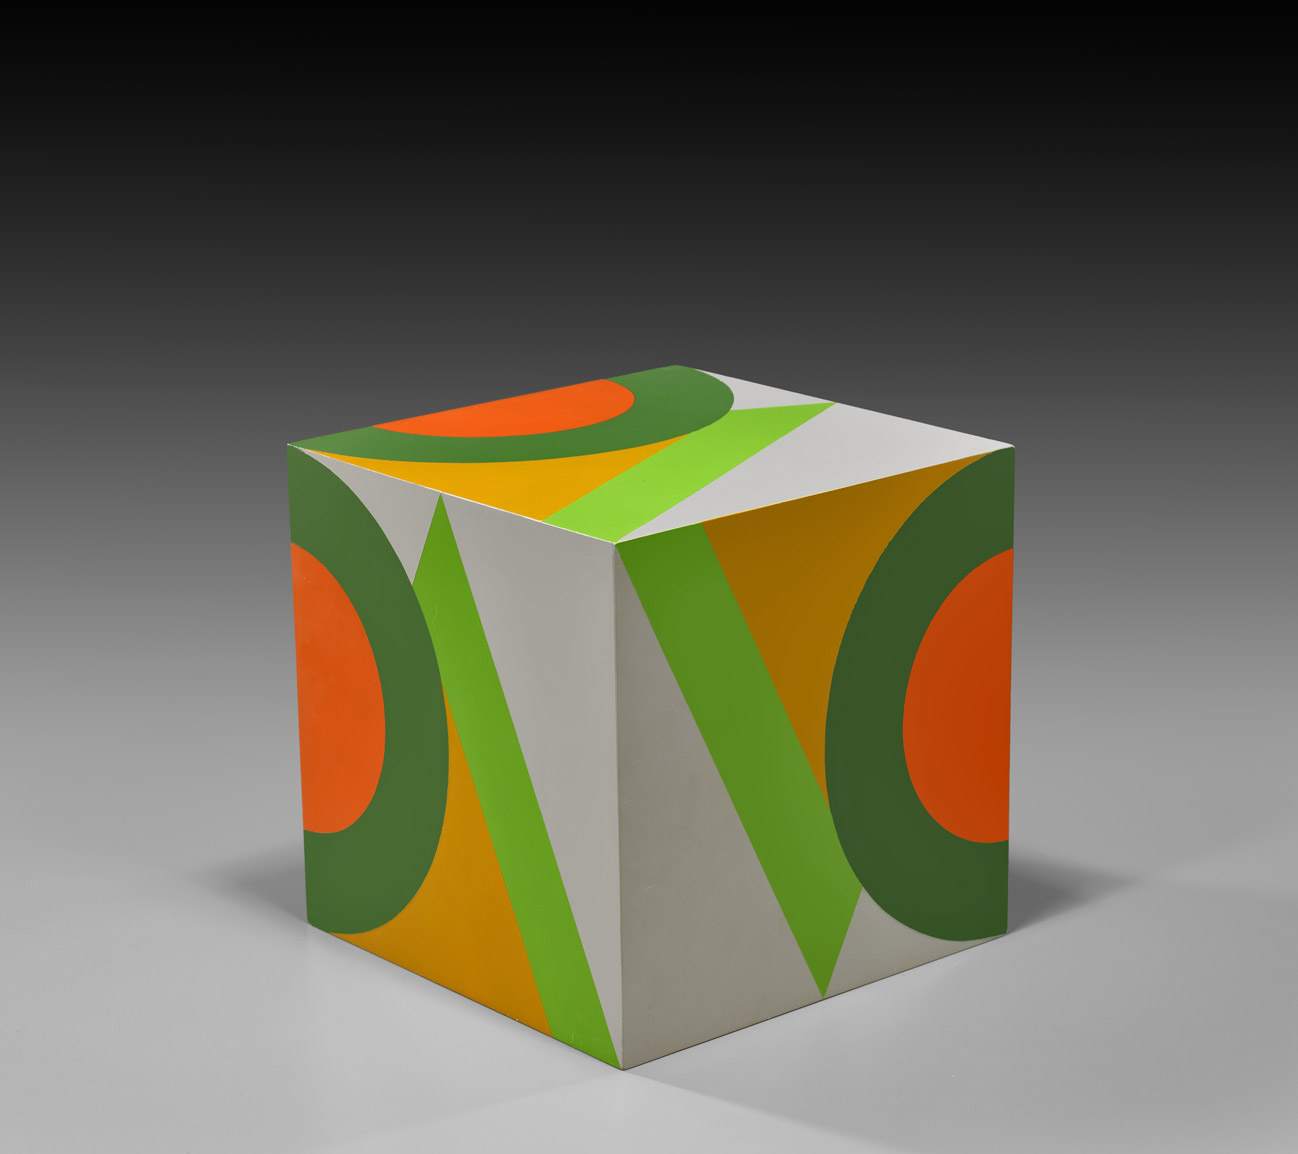 untitled cube (grey background VC) , 1984  oil on wood 10 x 10 x 10 inches; 25.4 x 25.4 x 25.4 centimeters